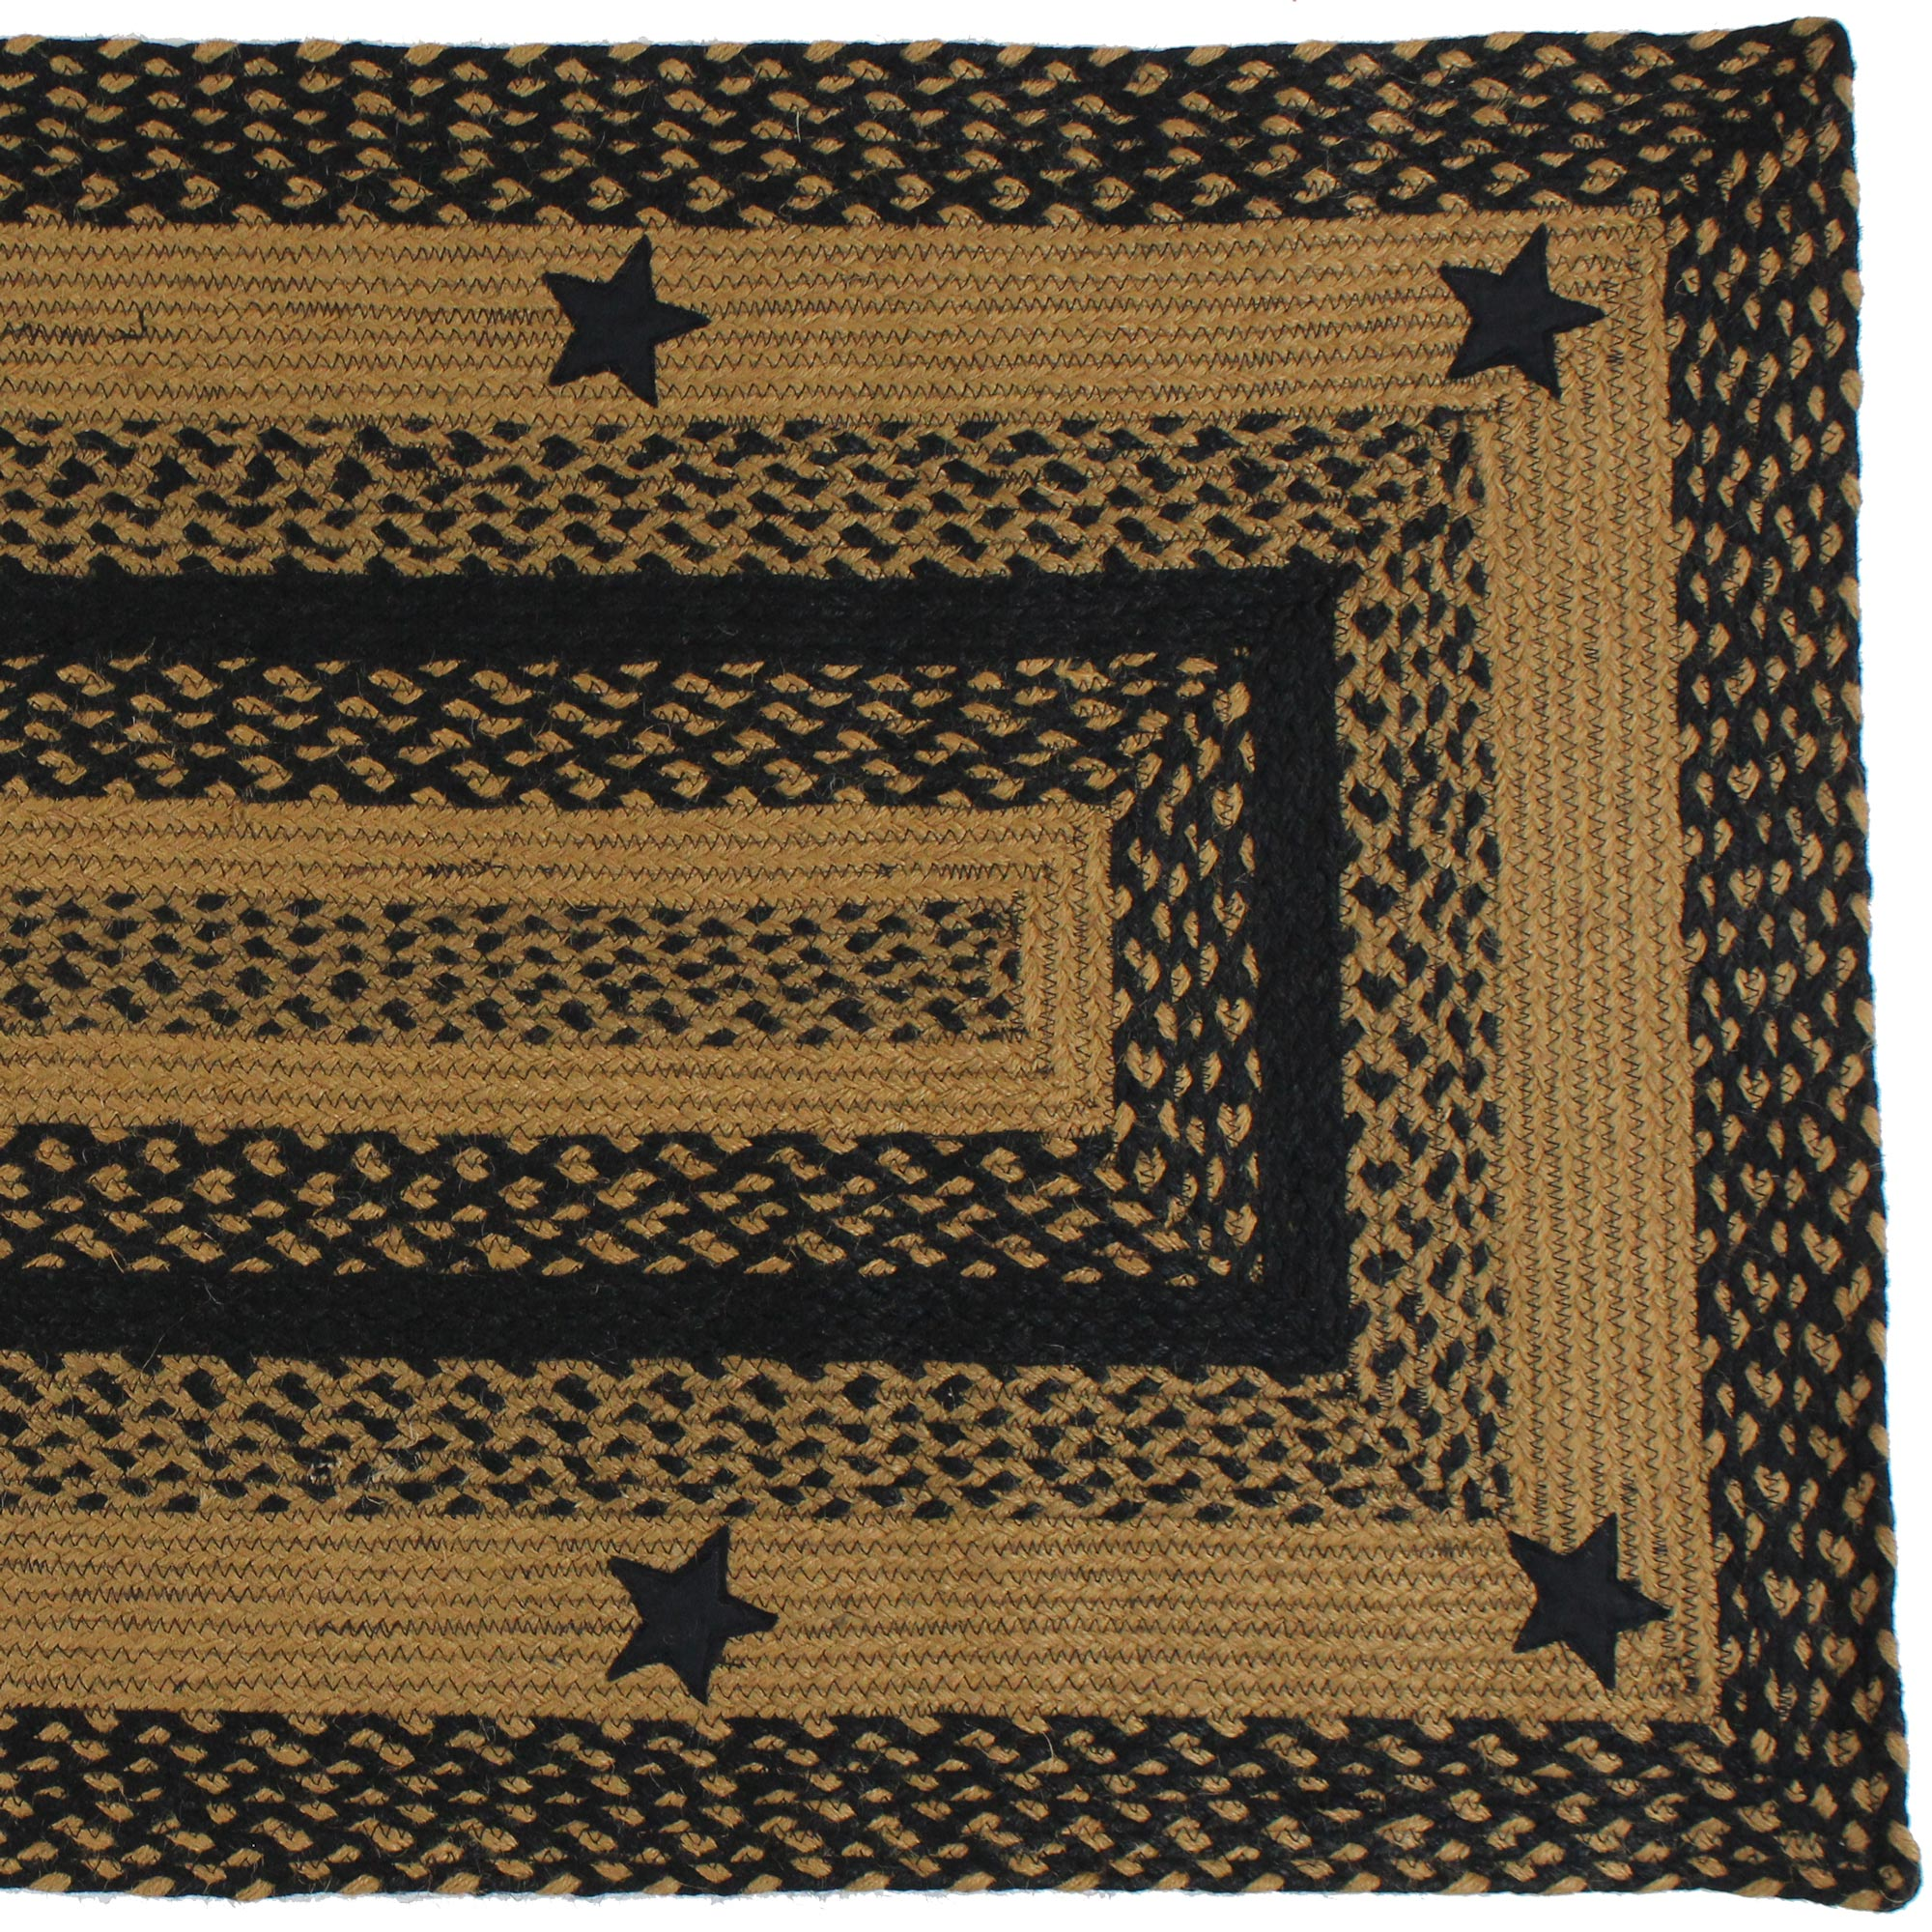 Gorgeous braided rug for floorings and rugs ideas with round braided rugs and braided area rugs